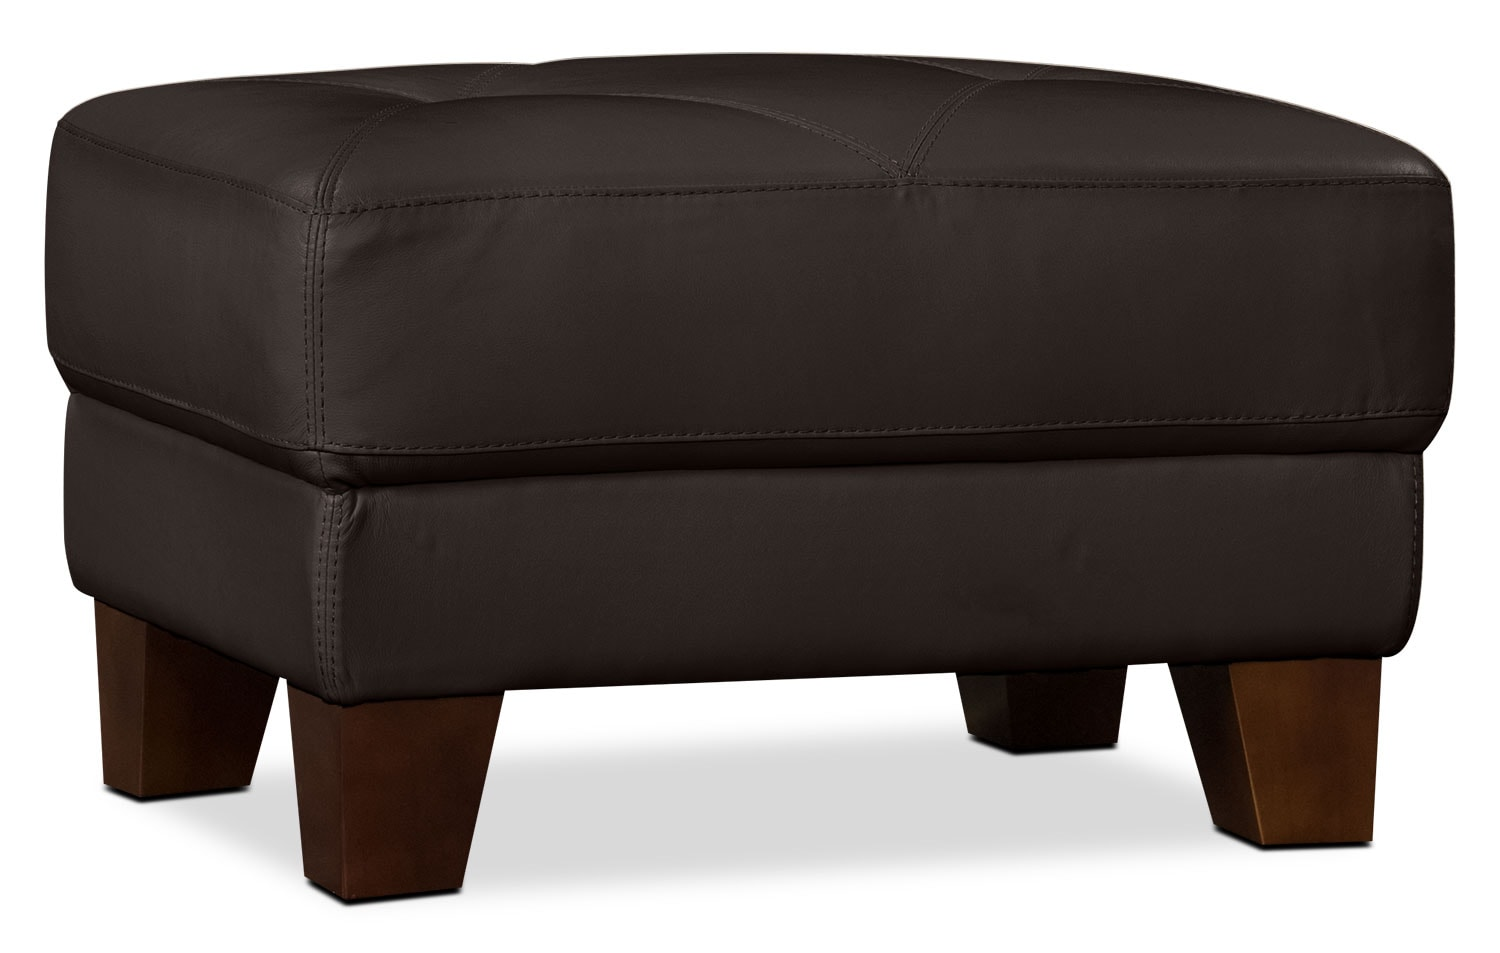 Vita 100% Genuine Leather Ottoman – Chocolate